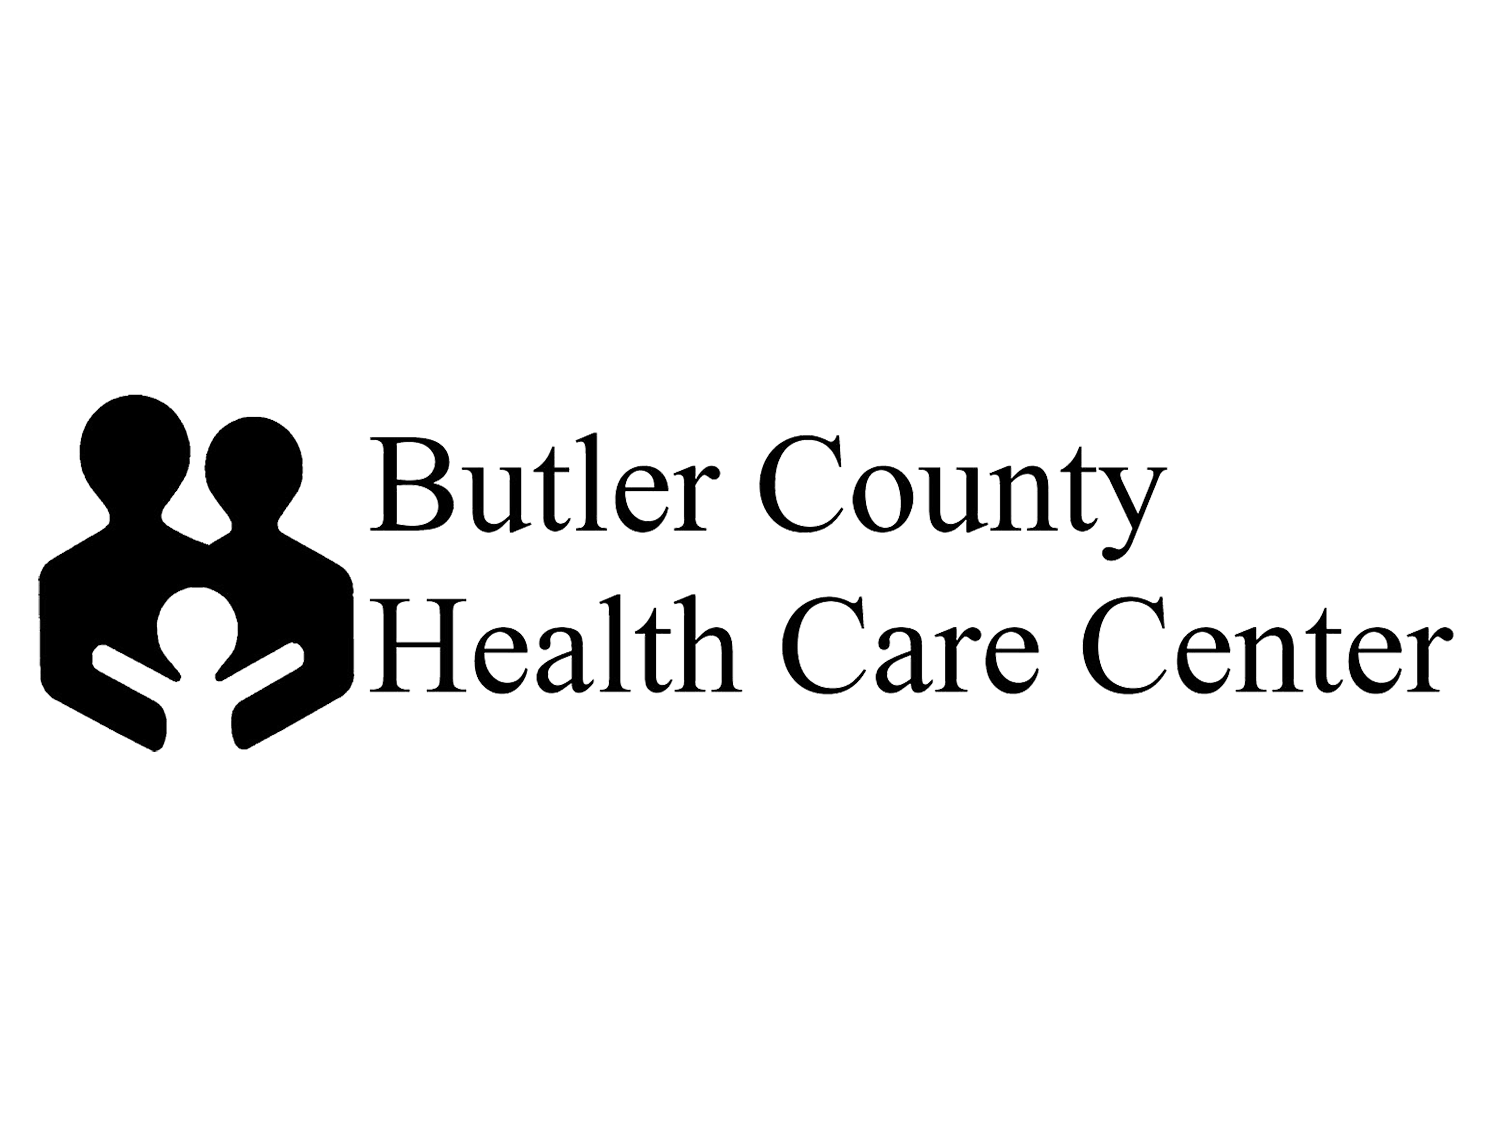 Butler County Health Care Center